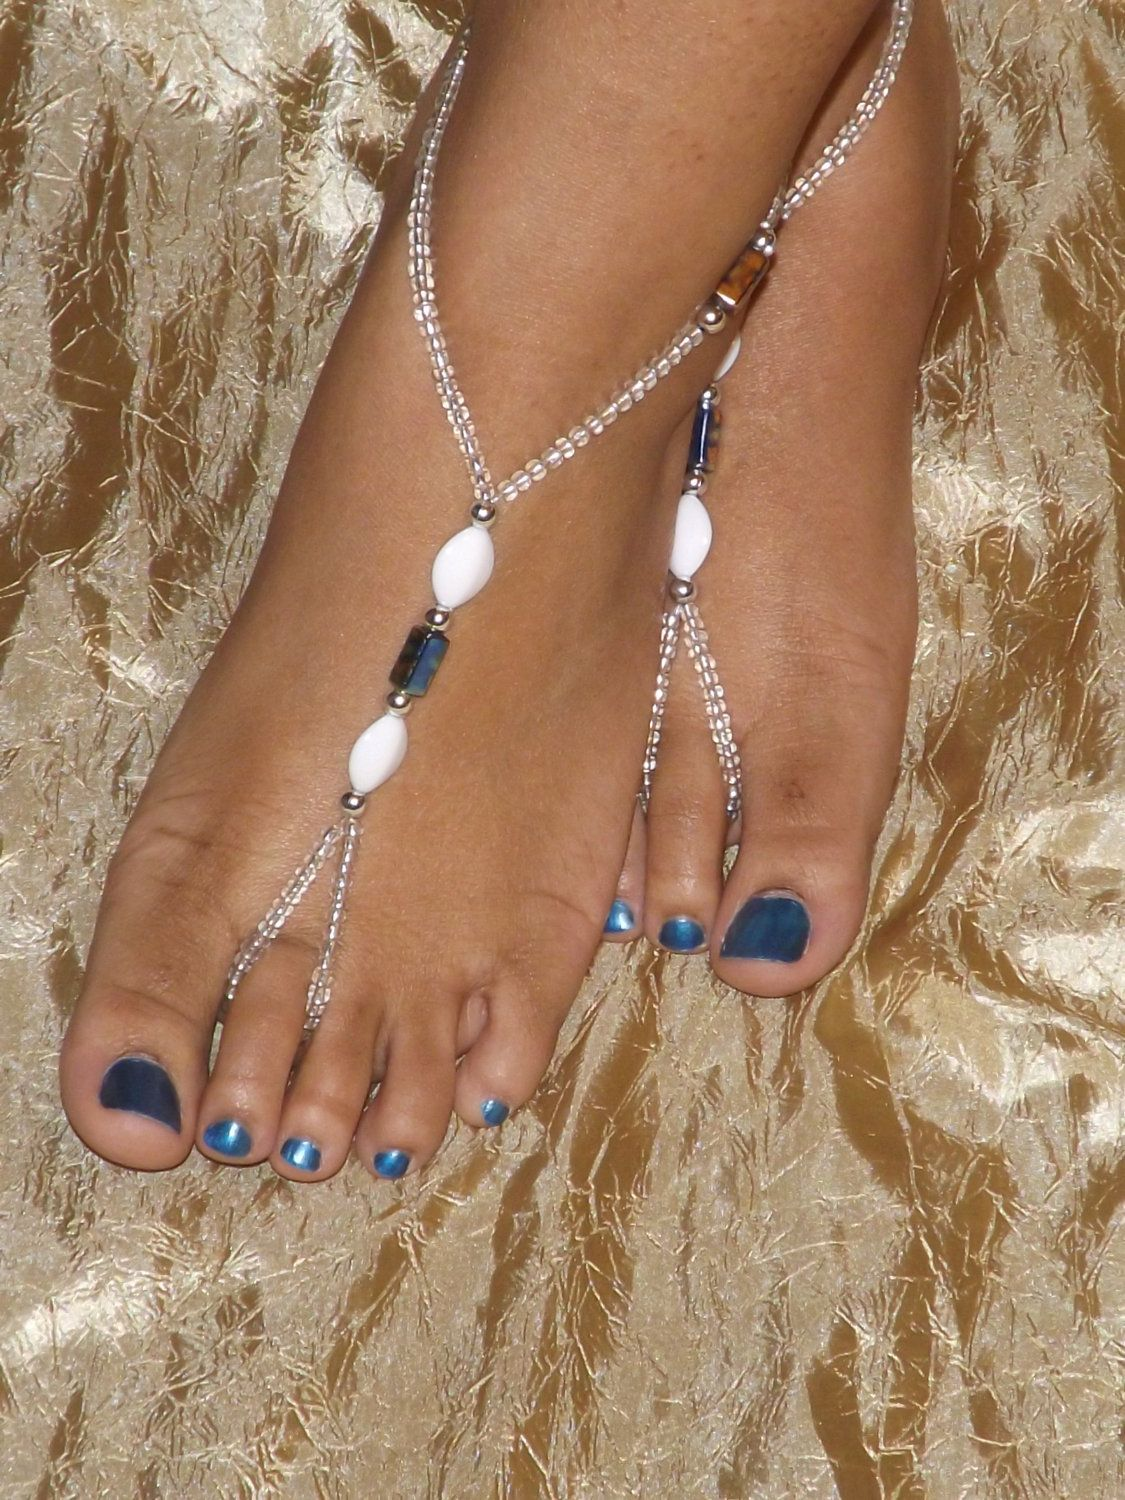 Check Barefoot Sandles Foot Jewelry Anklet